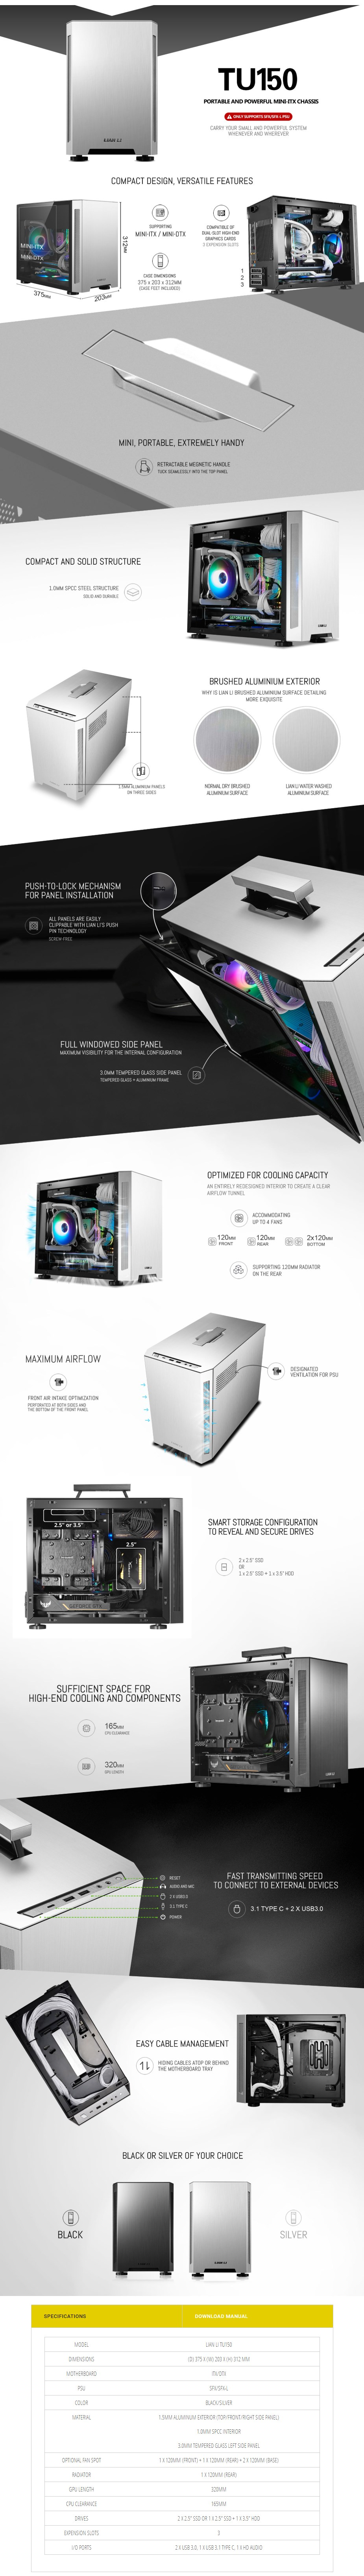 Lian-Li PC-TU150 RGB Tempered Glass Mini ITX Case - Black - Overview 1